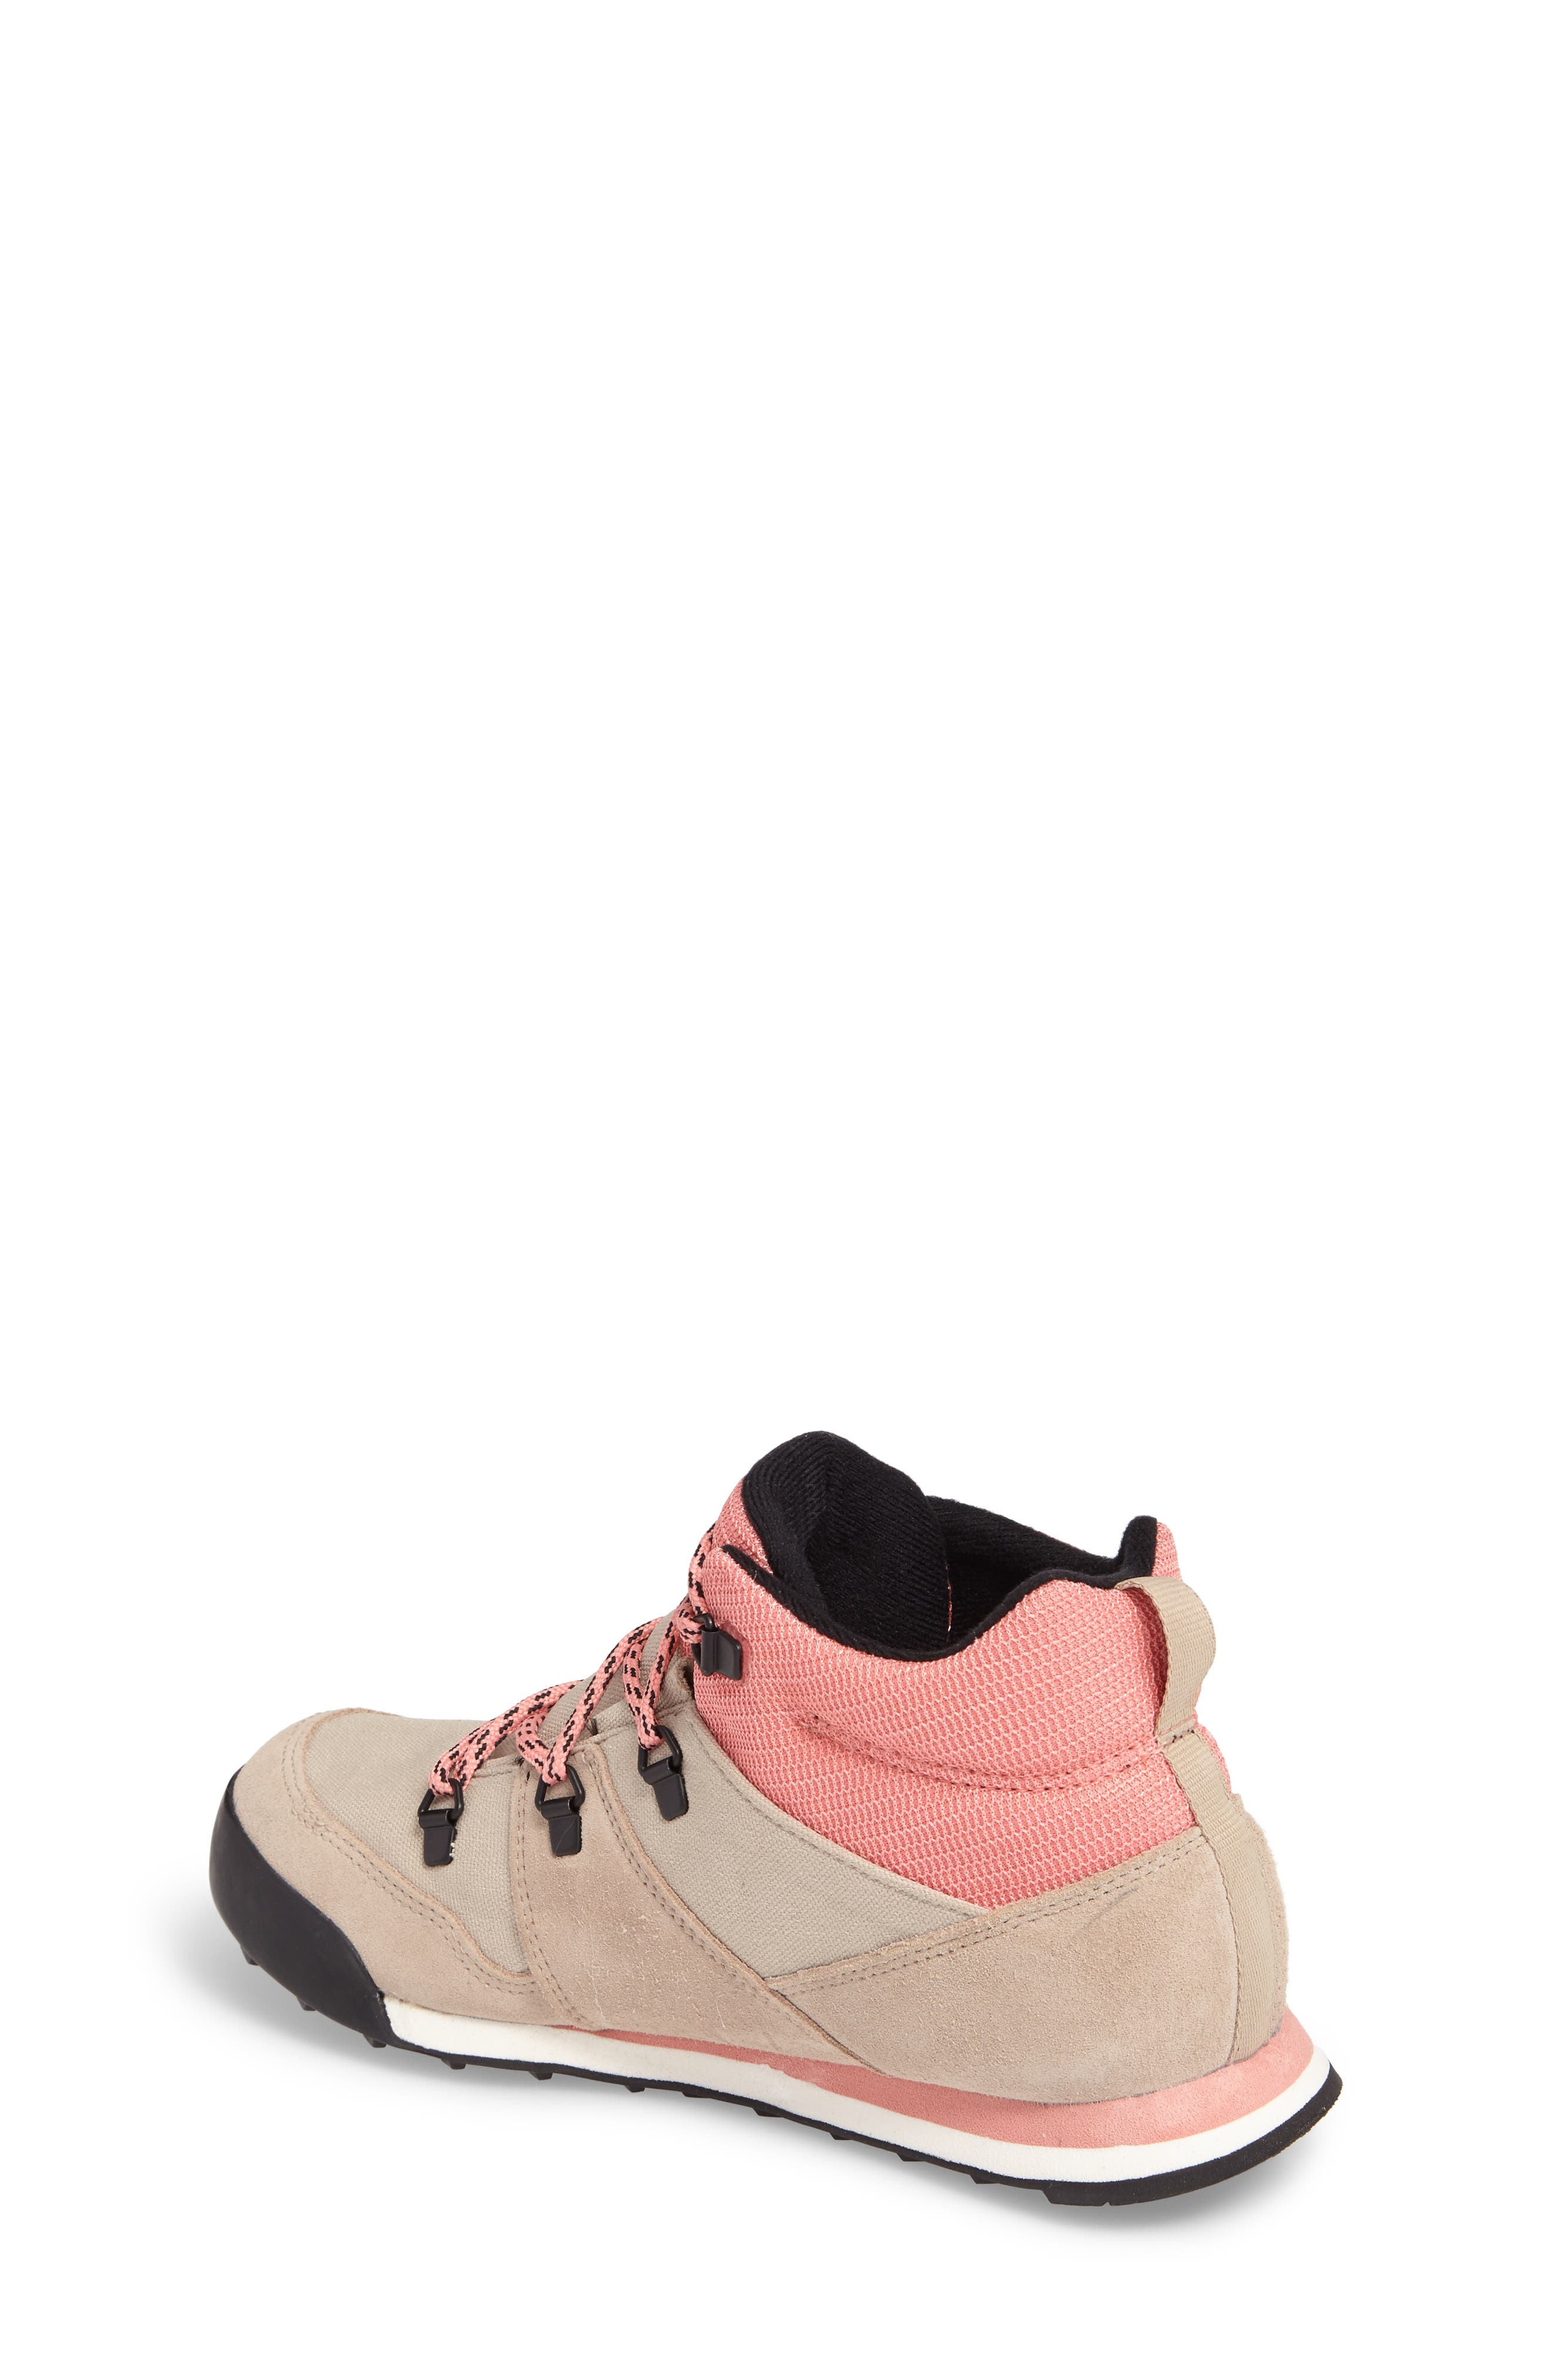 Snowpitch Insulated Sneaker Boot,                             Alternate thumbnail 2, color,                             Icey Pink/ Khaki/ Energy Pink